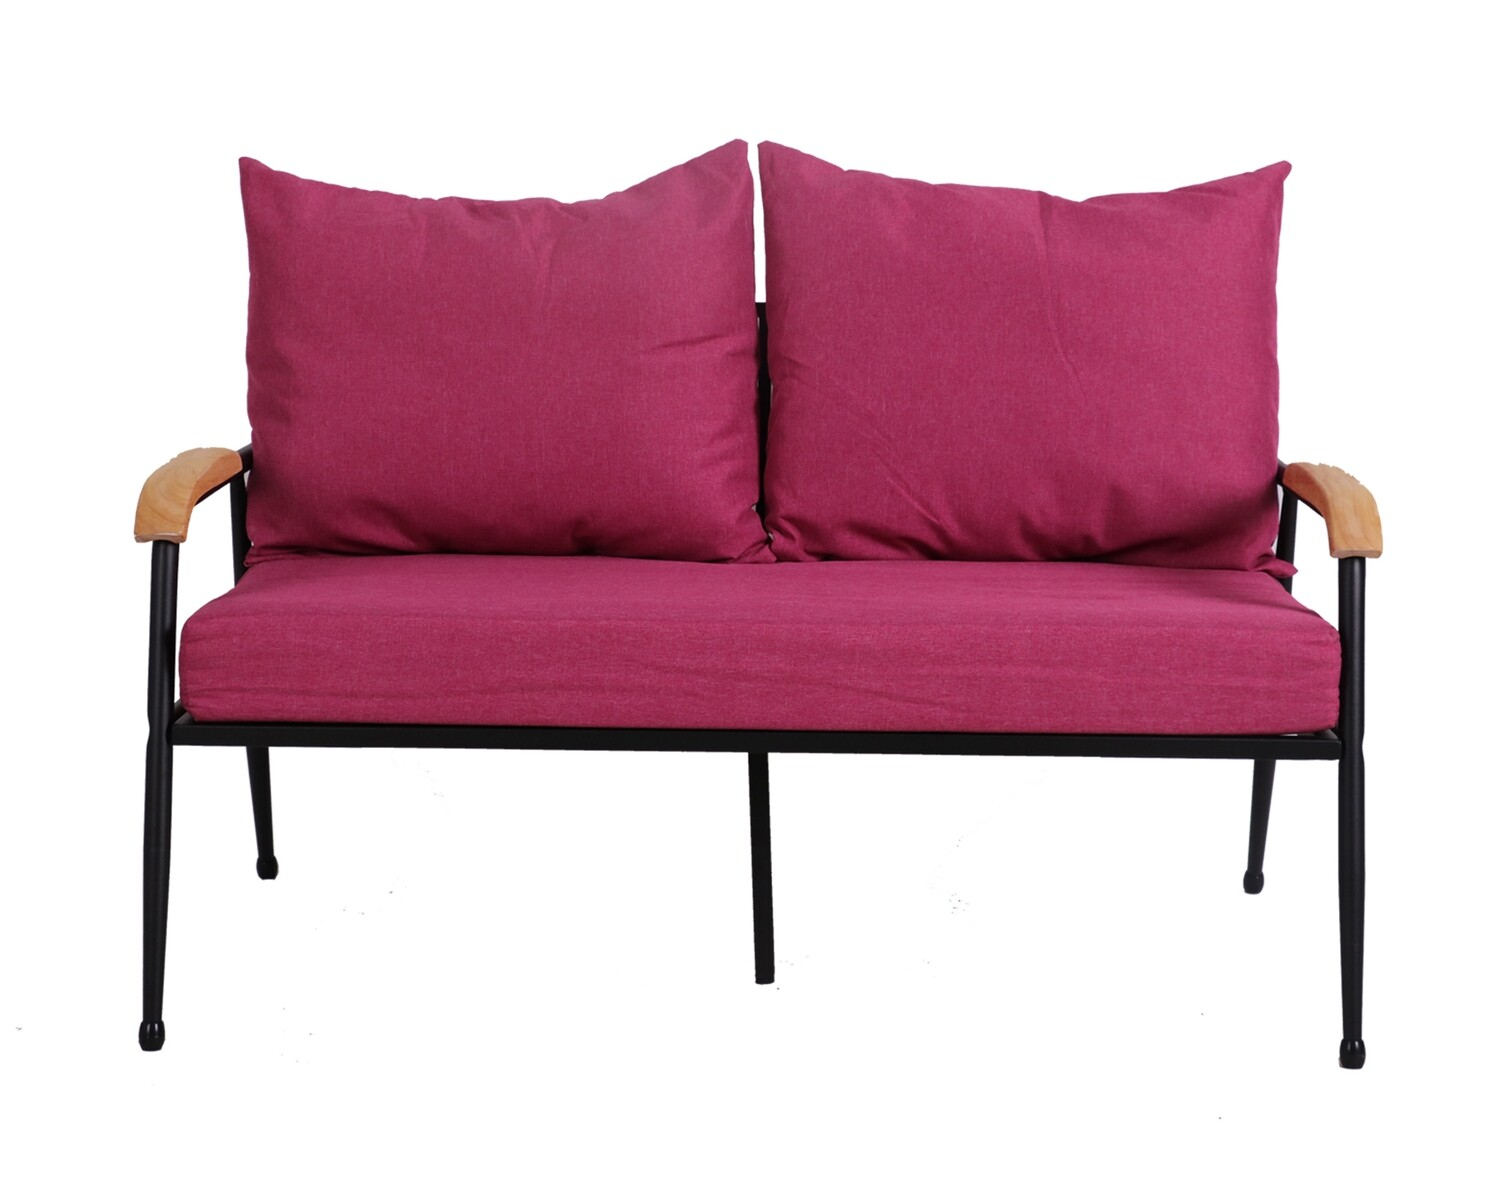 Flotti Canaan Metal Sofa-2 Seater (Grey, Purple, Pink)